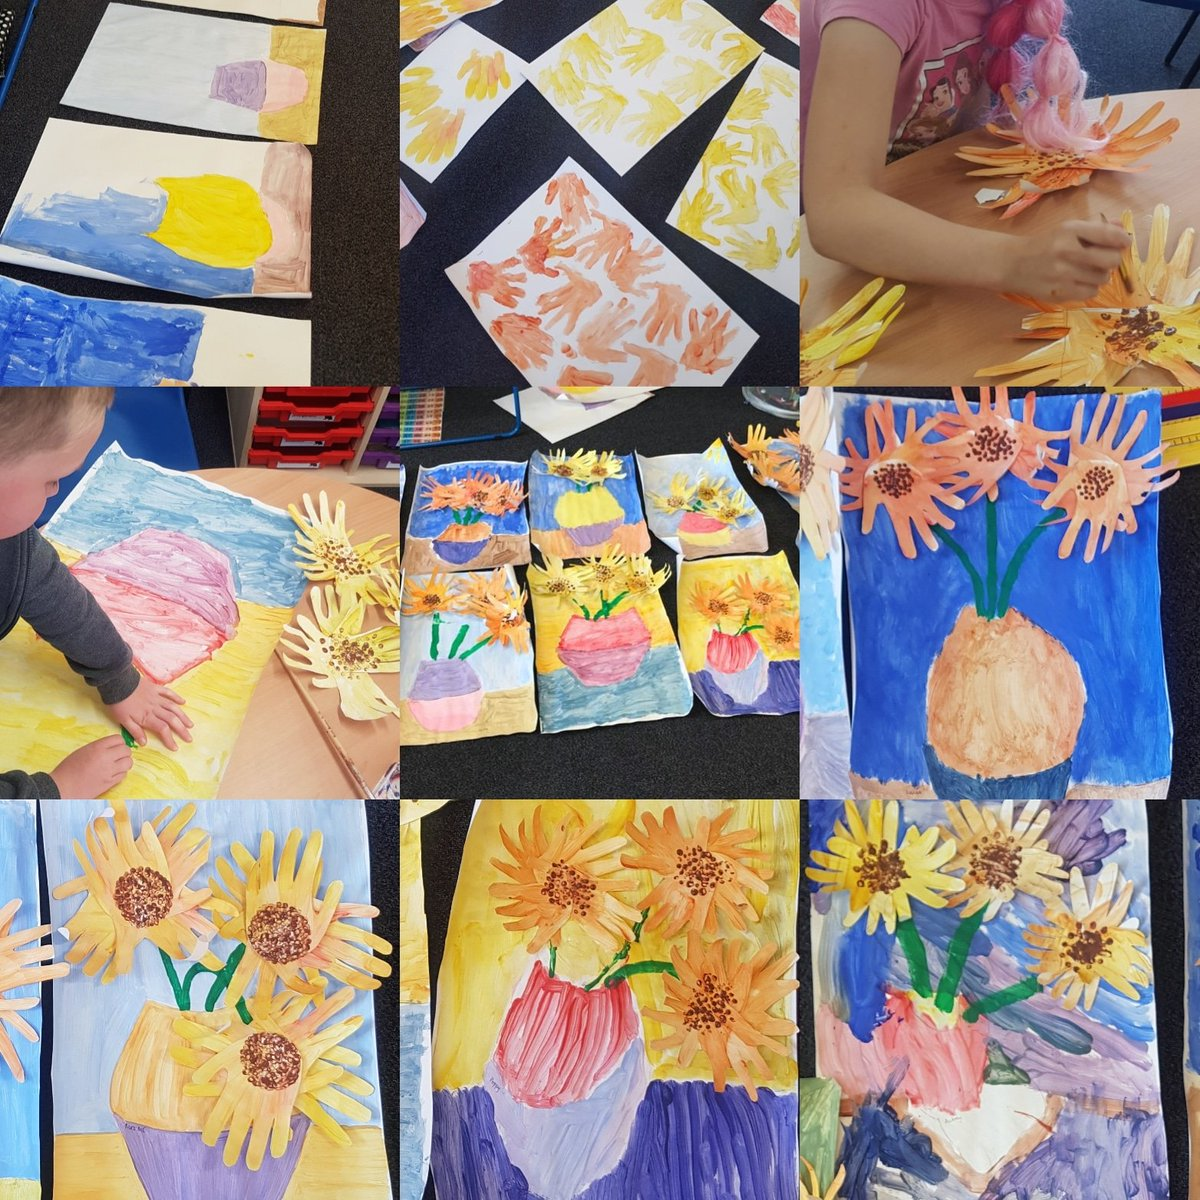 Van Gogh inspired sunflowers today at school 🌻🌻🌻 #keyworker #teach #artistinspired